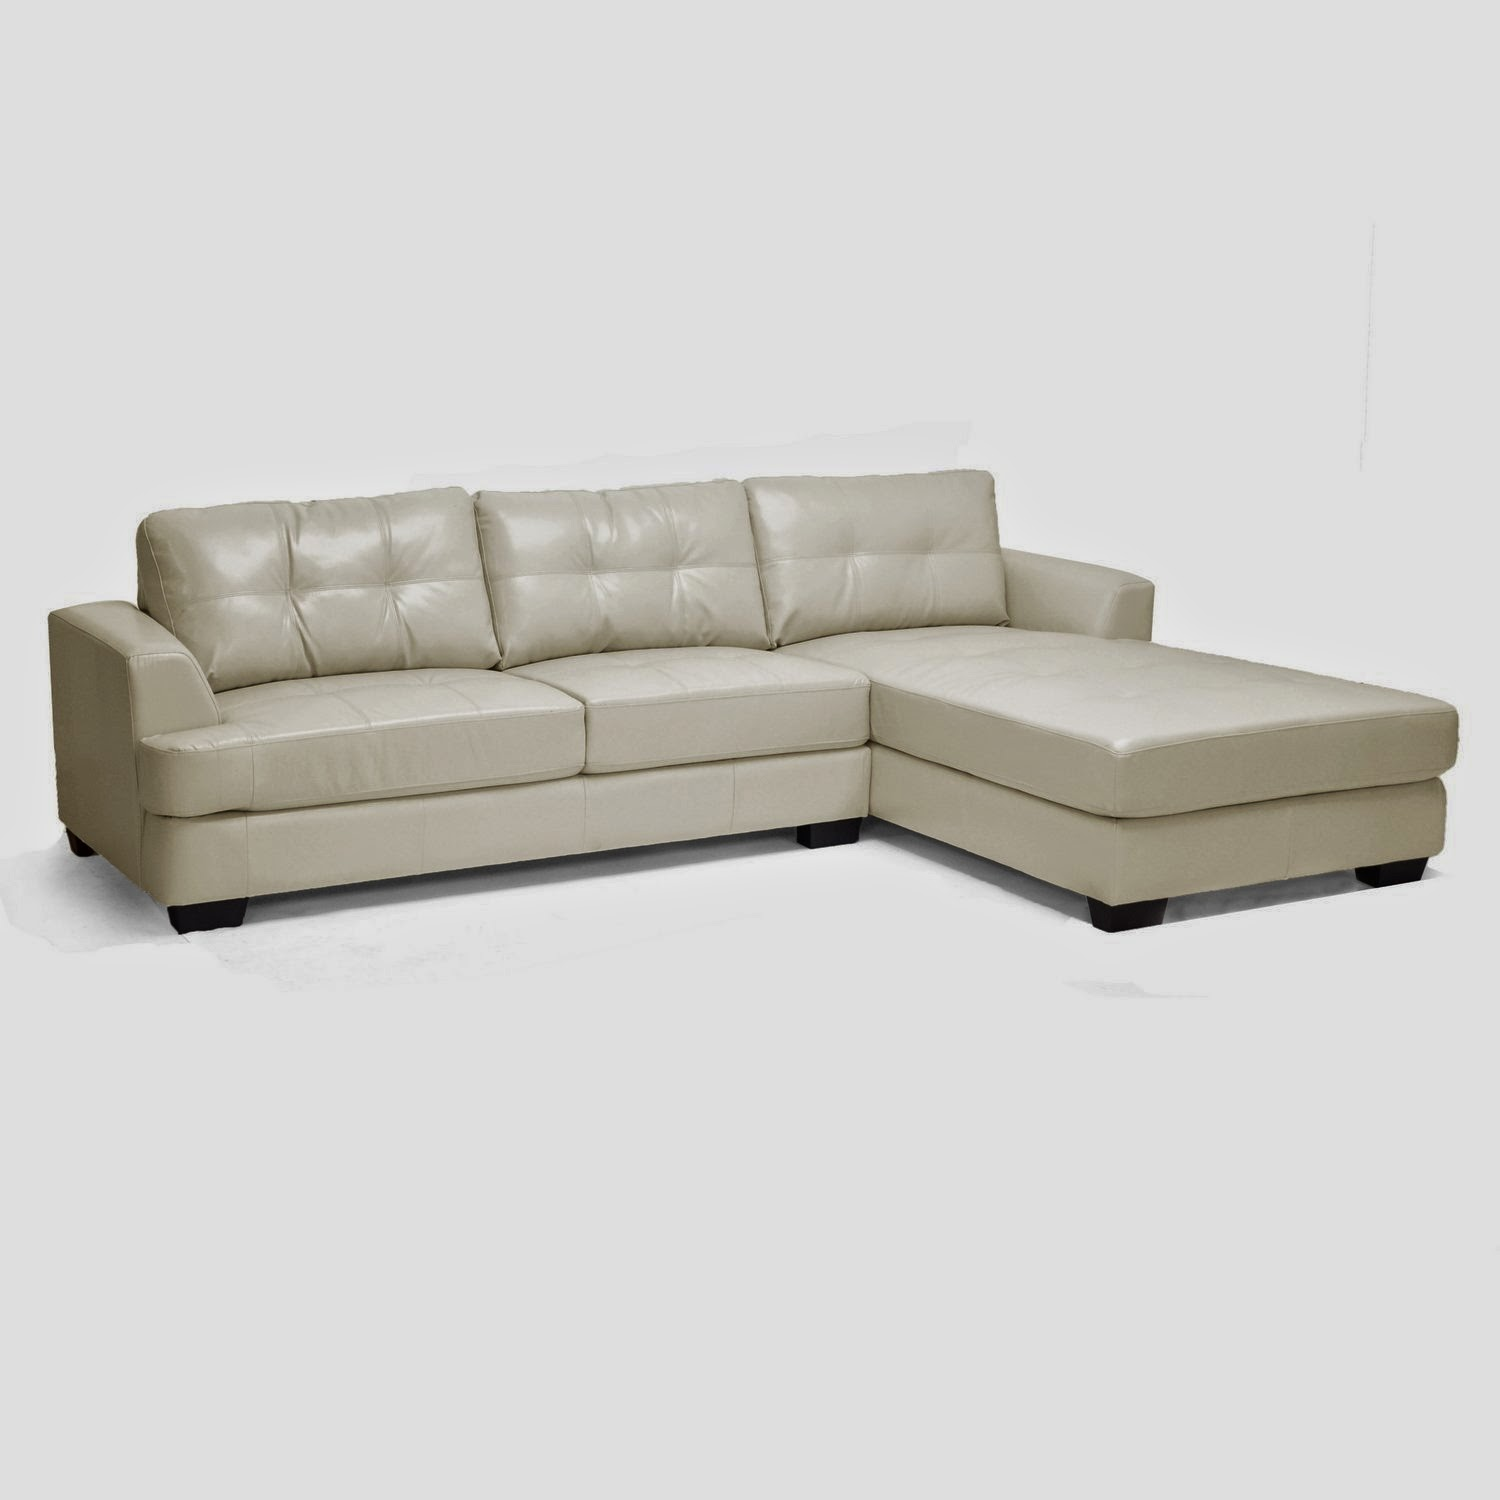 couch with chaise: leather couch with chaise lounge